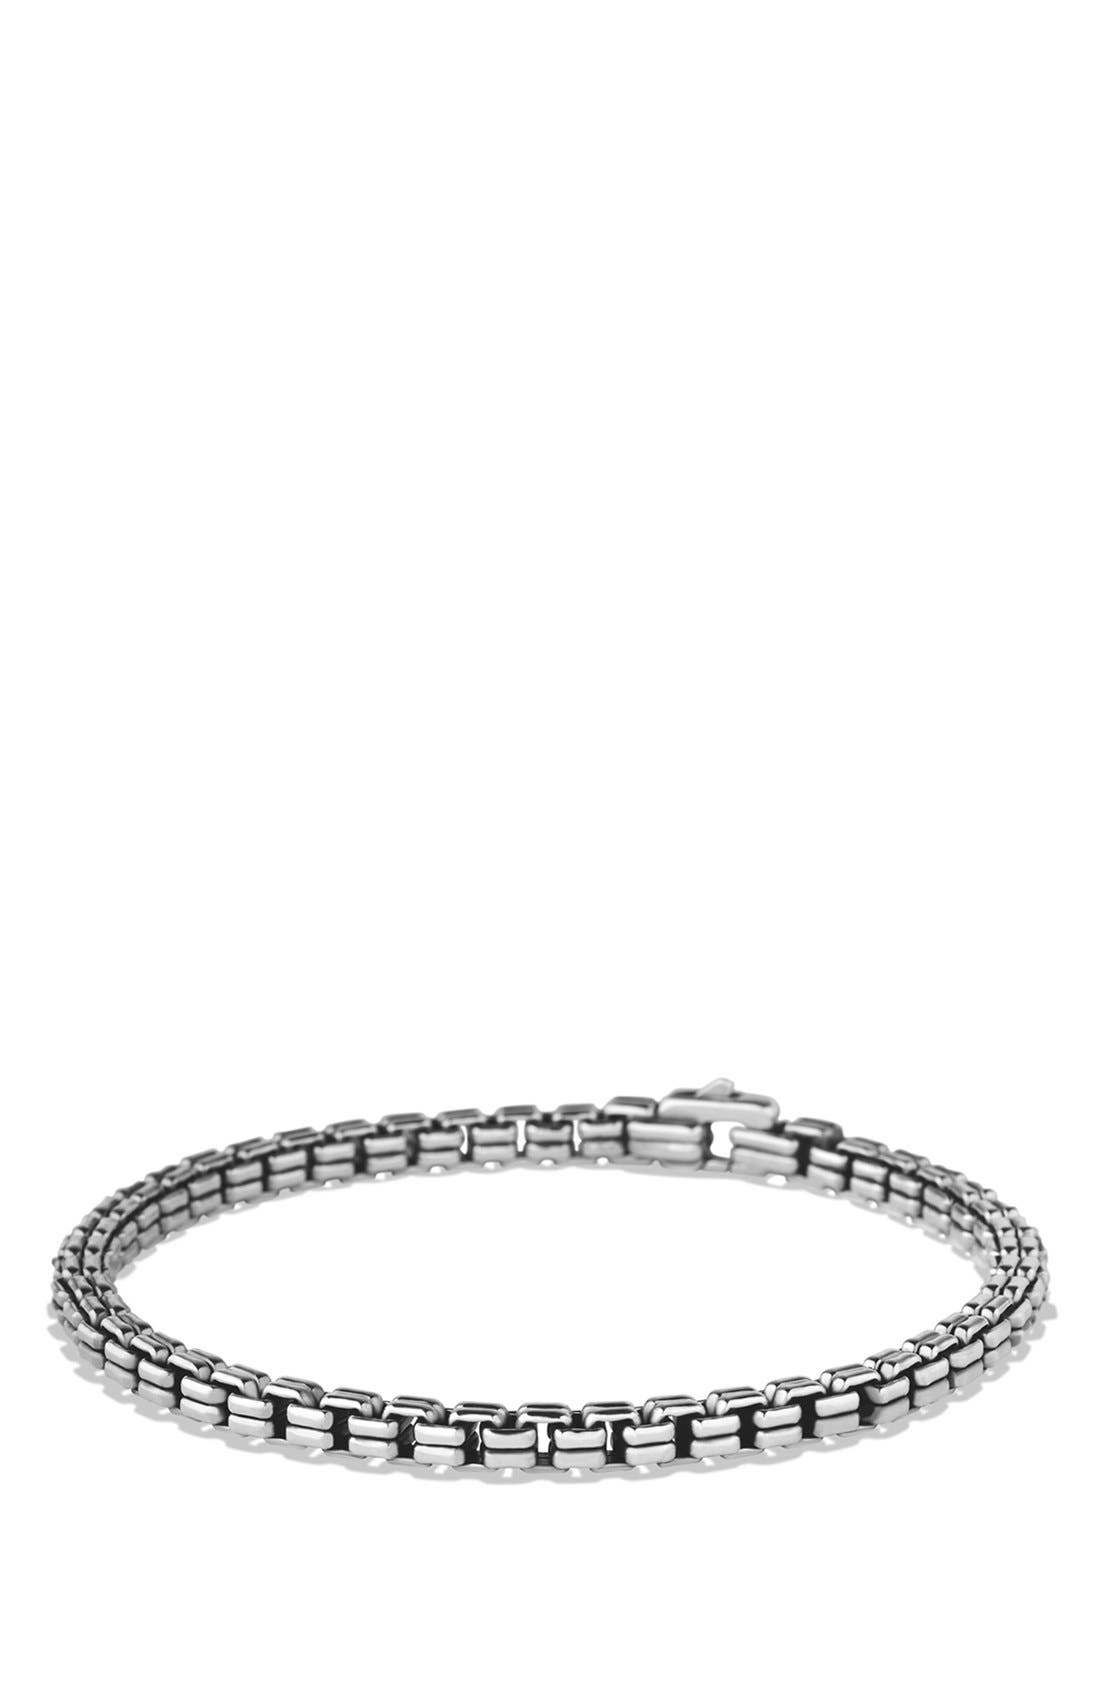 DAVID YURMAN Chain Double Box Chain Bracelet